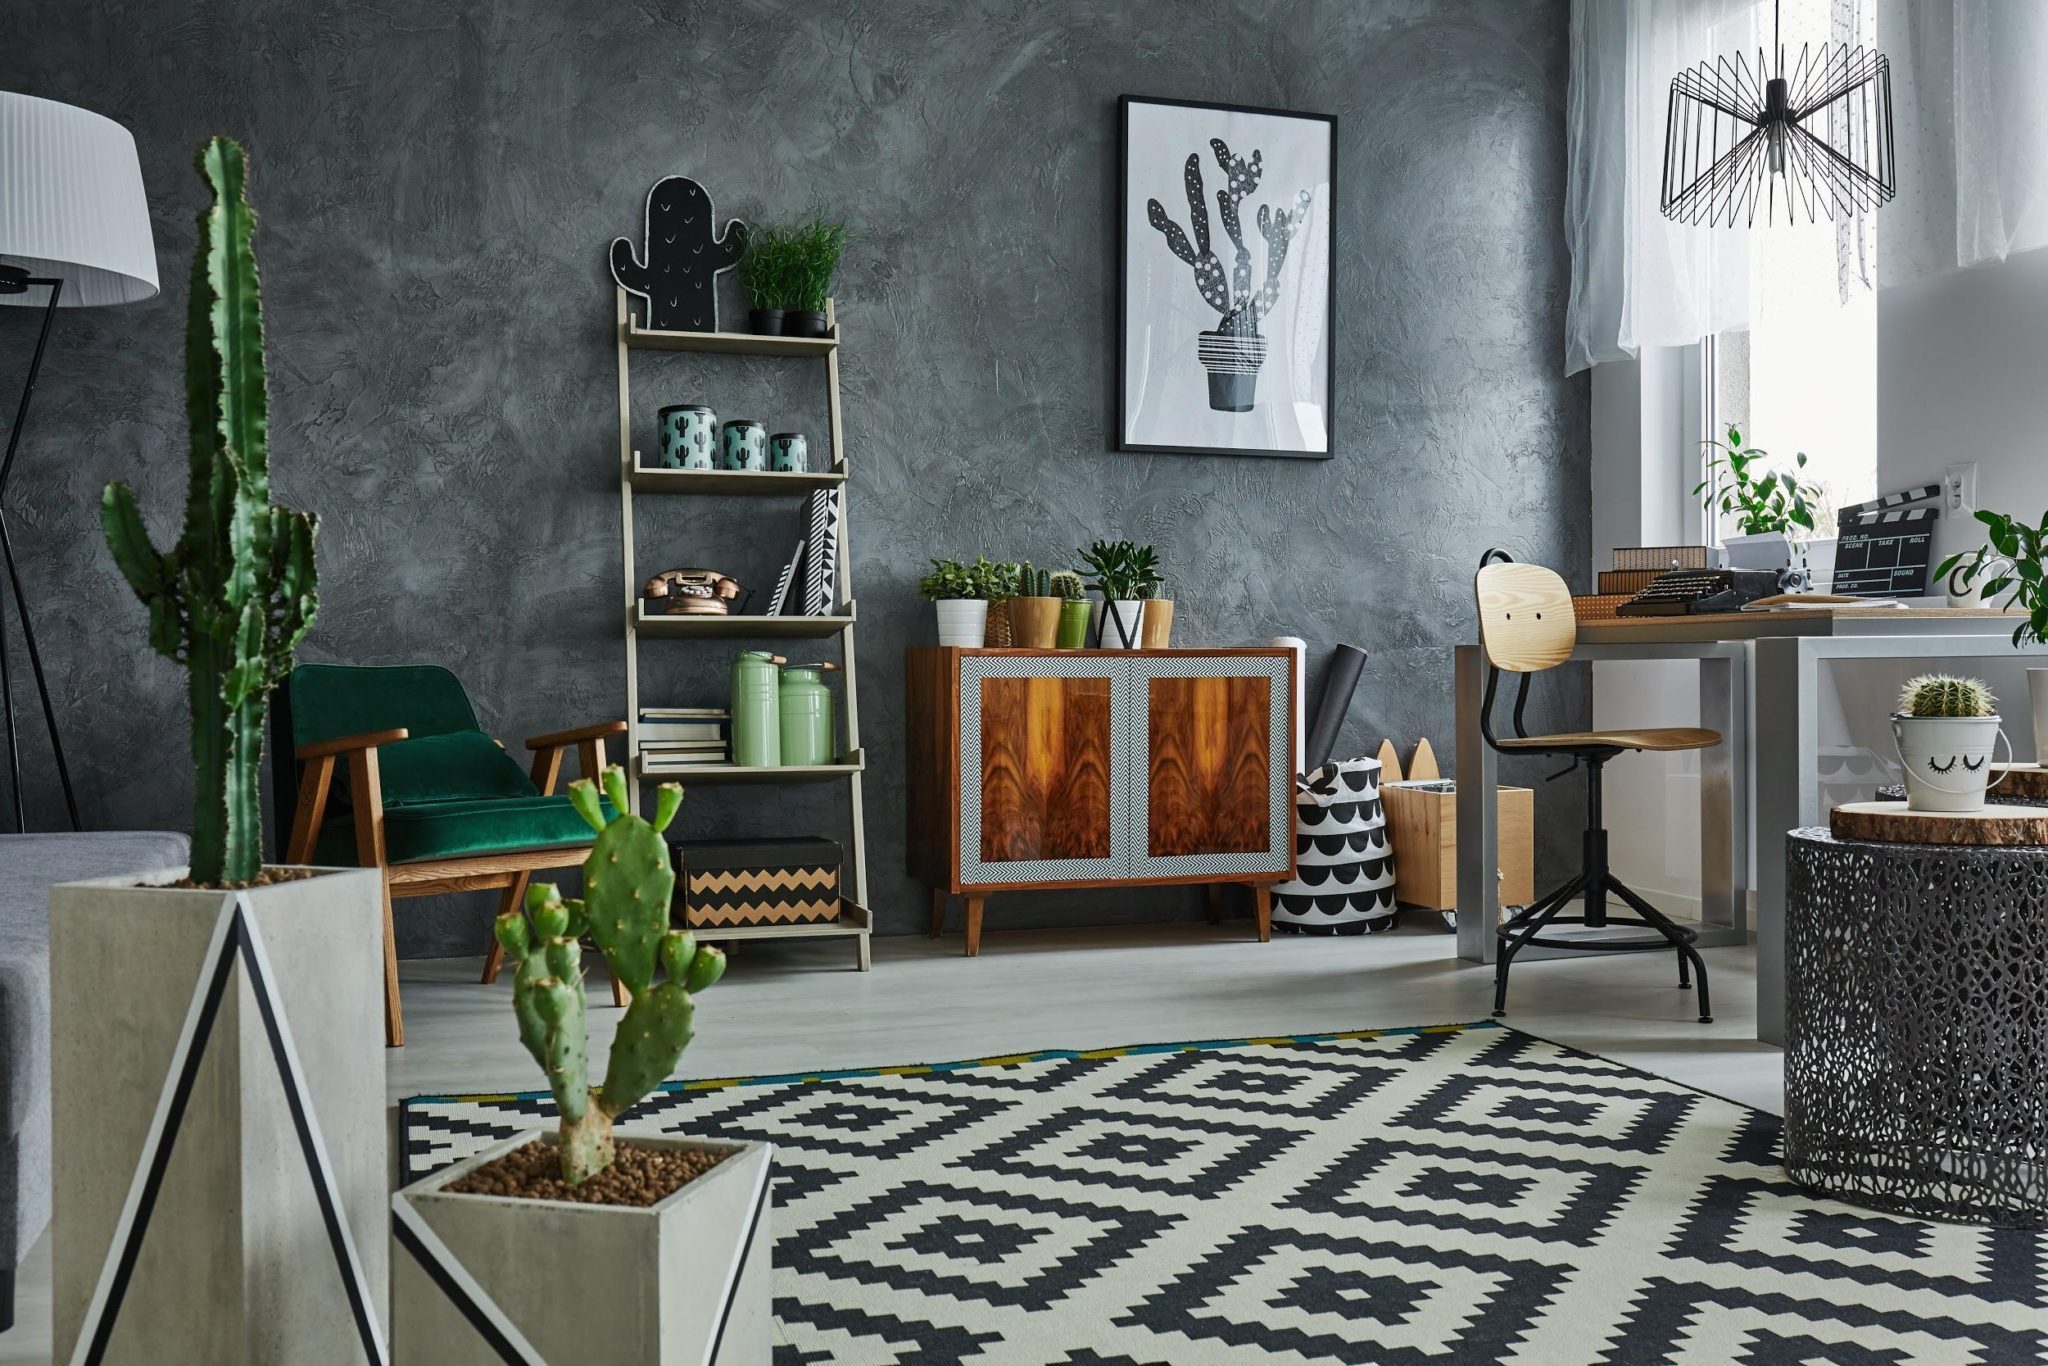 5 Inexpensive Ways to Transform Your Home